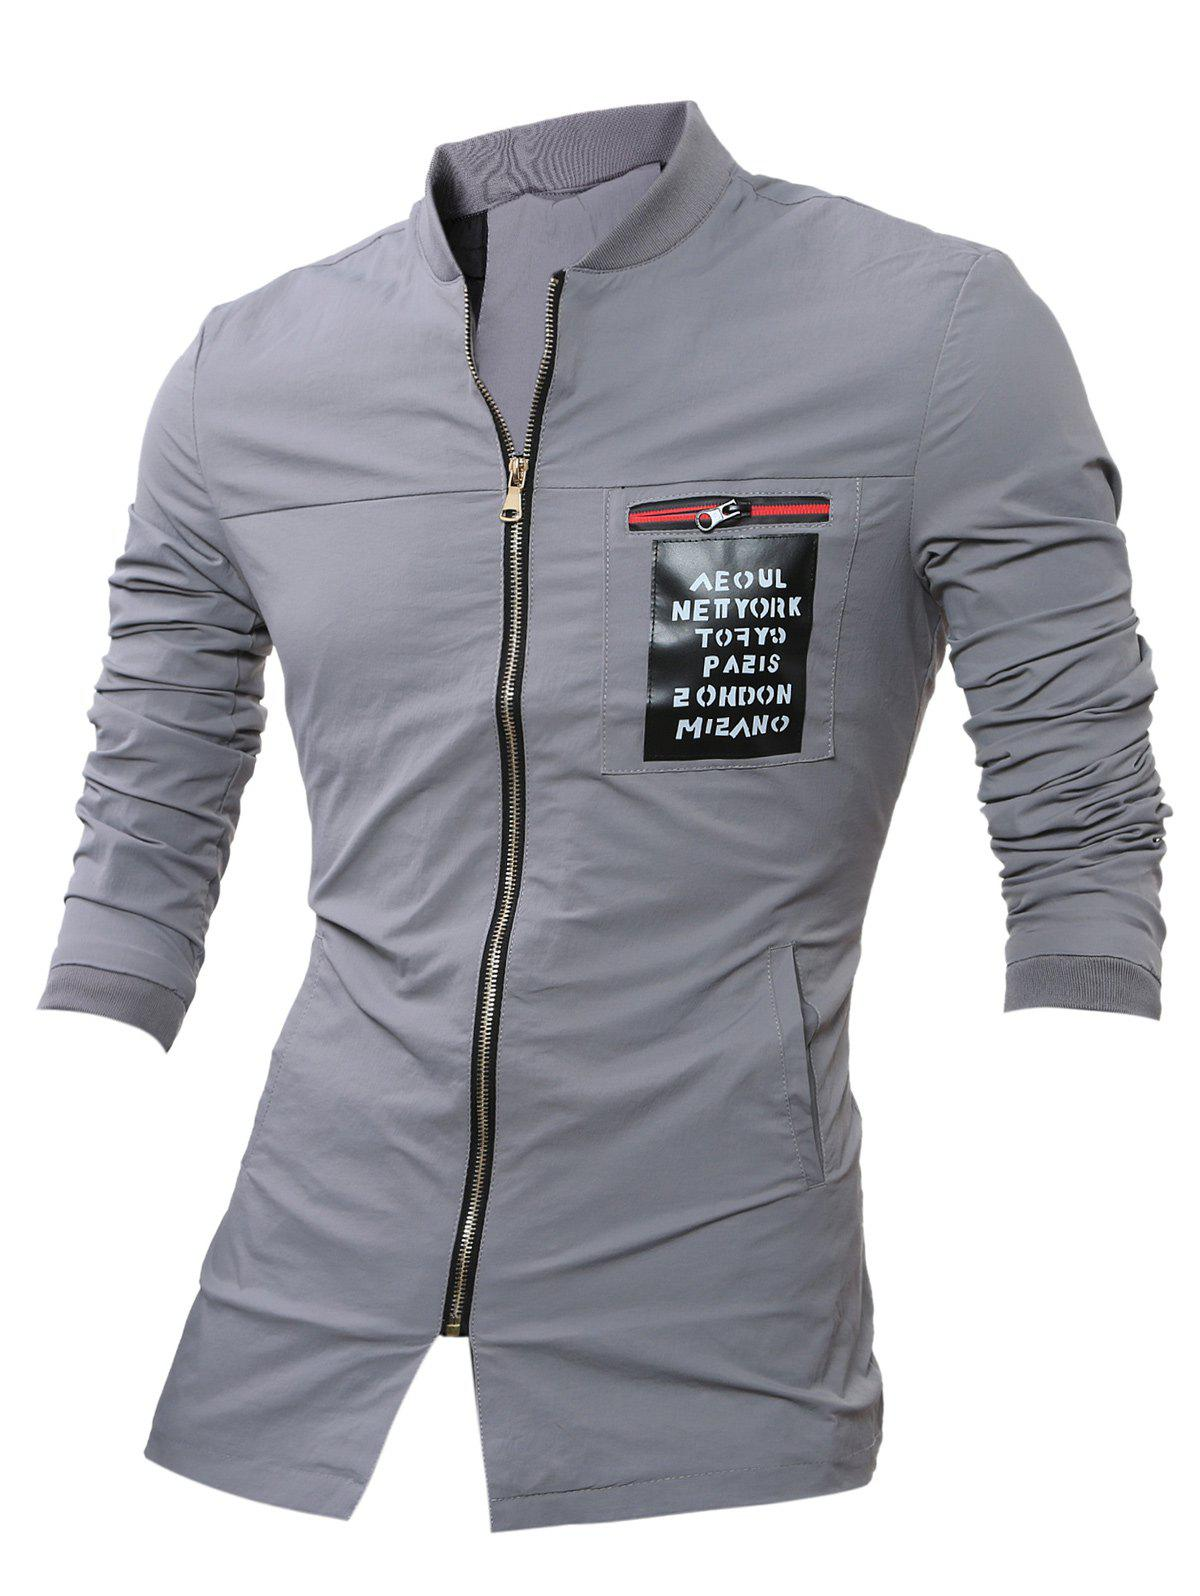 PU Leather Applique Stand Collar Zip Up Jacket - GRAY XL